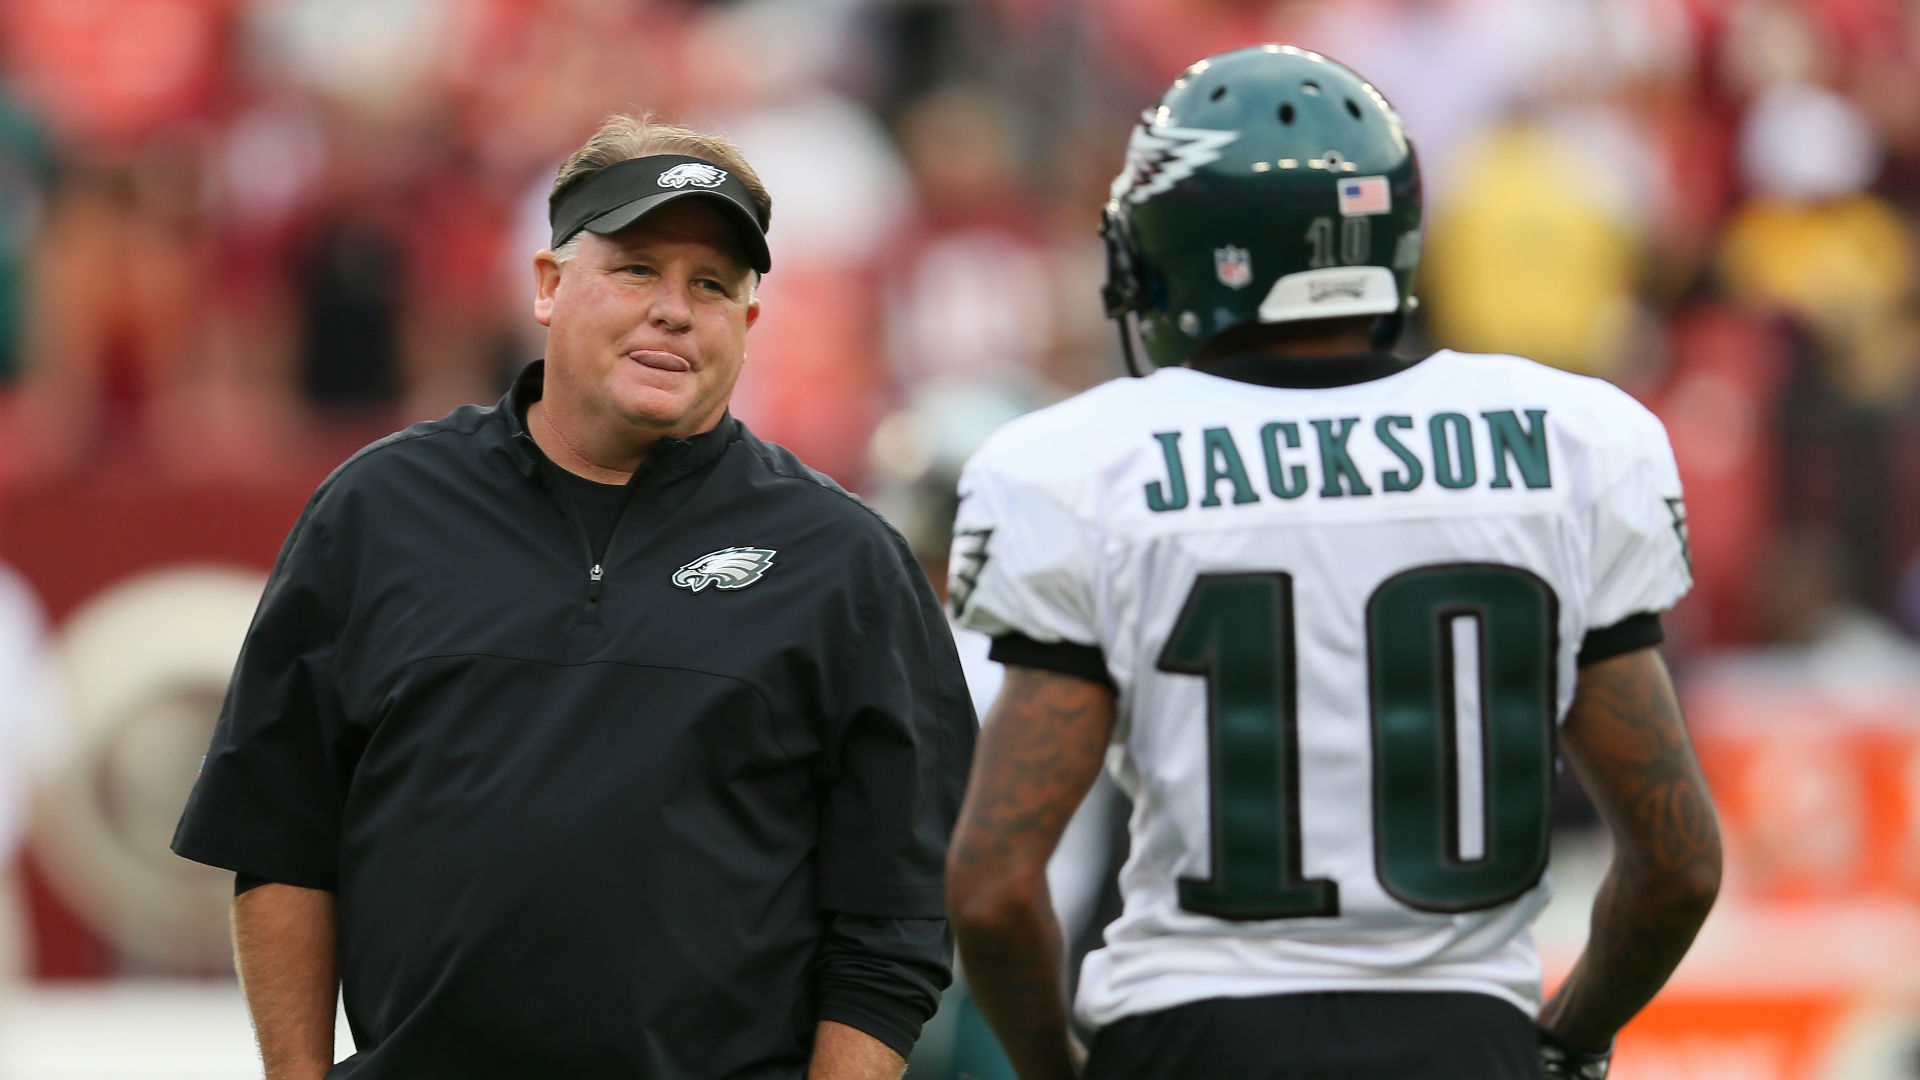 chip-kelly-djax-1816-usnews-getty-FTR